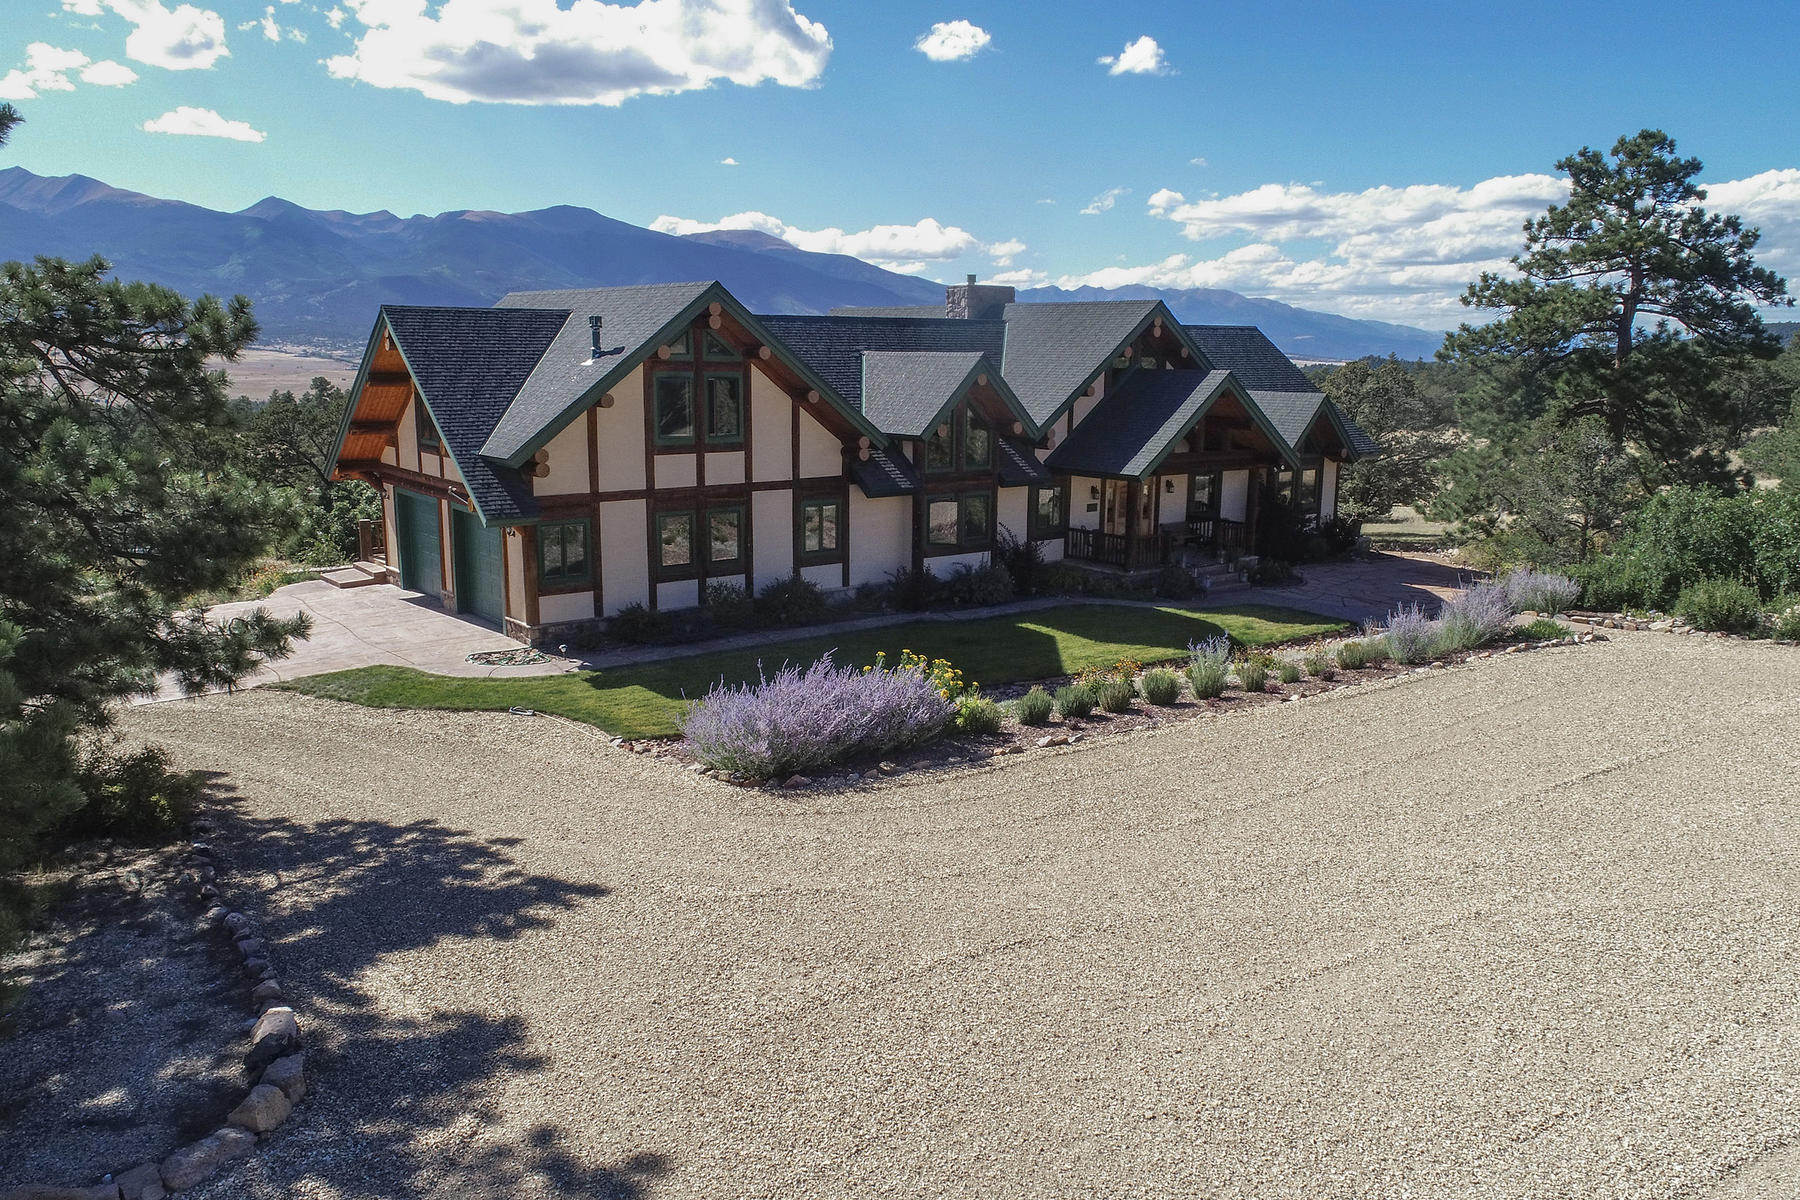 Single Family Homes for Sale at Sangre de Cristo Mountains Home 2600 Pheasant Loop Westcliffe, Colorado 81252 United States